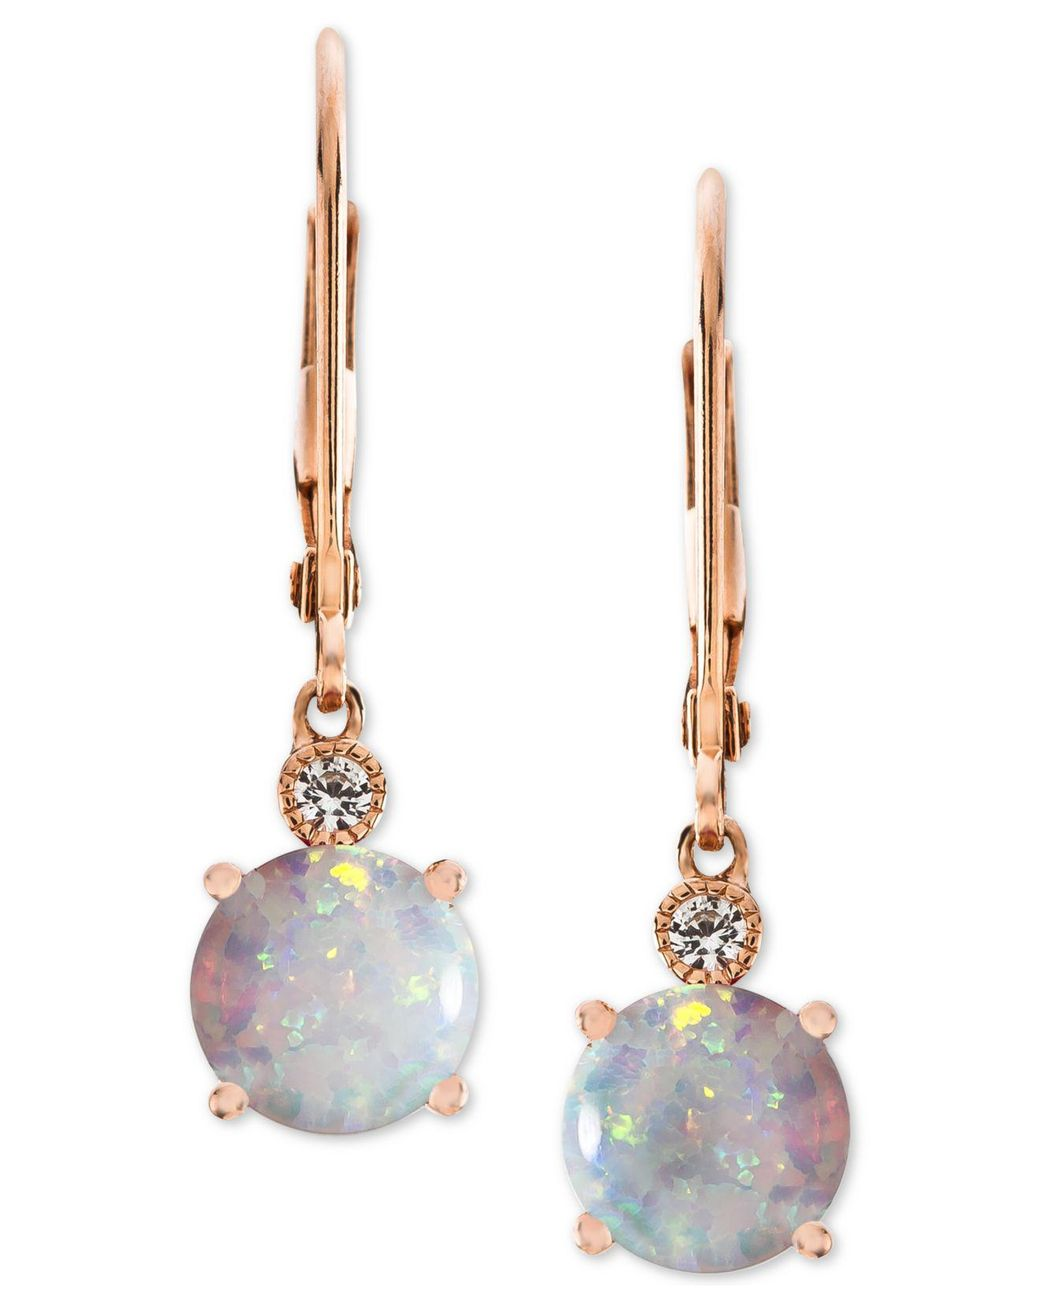 dfa7a6e13 Macy's Lab-created Opal (1-1/2 Ct. T.w.) & White Sapphire Accent Drop  Earrings In 14k Rose Gold-plated Sterling Silver - Lyst